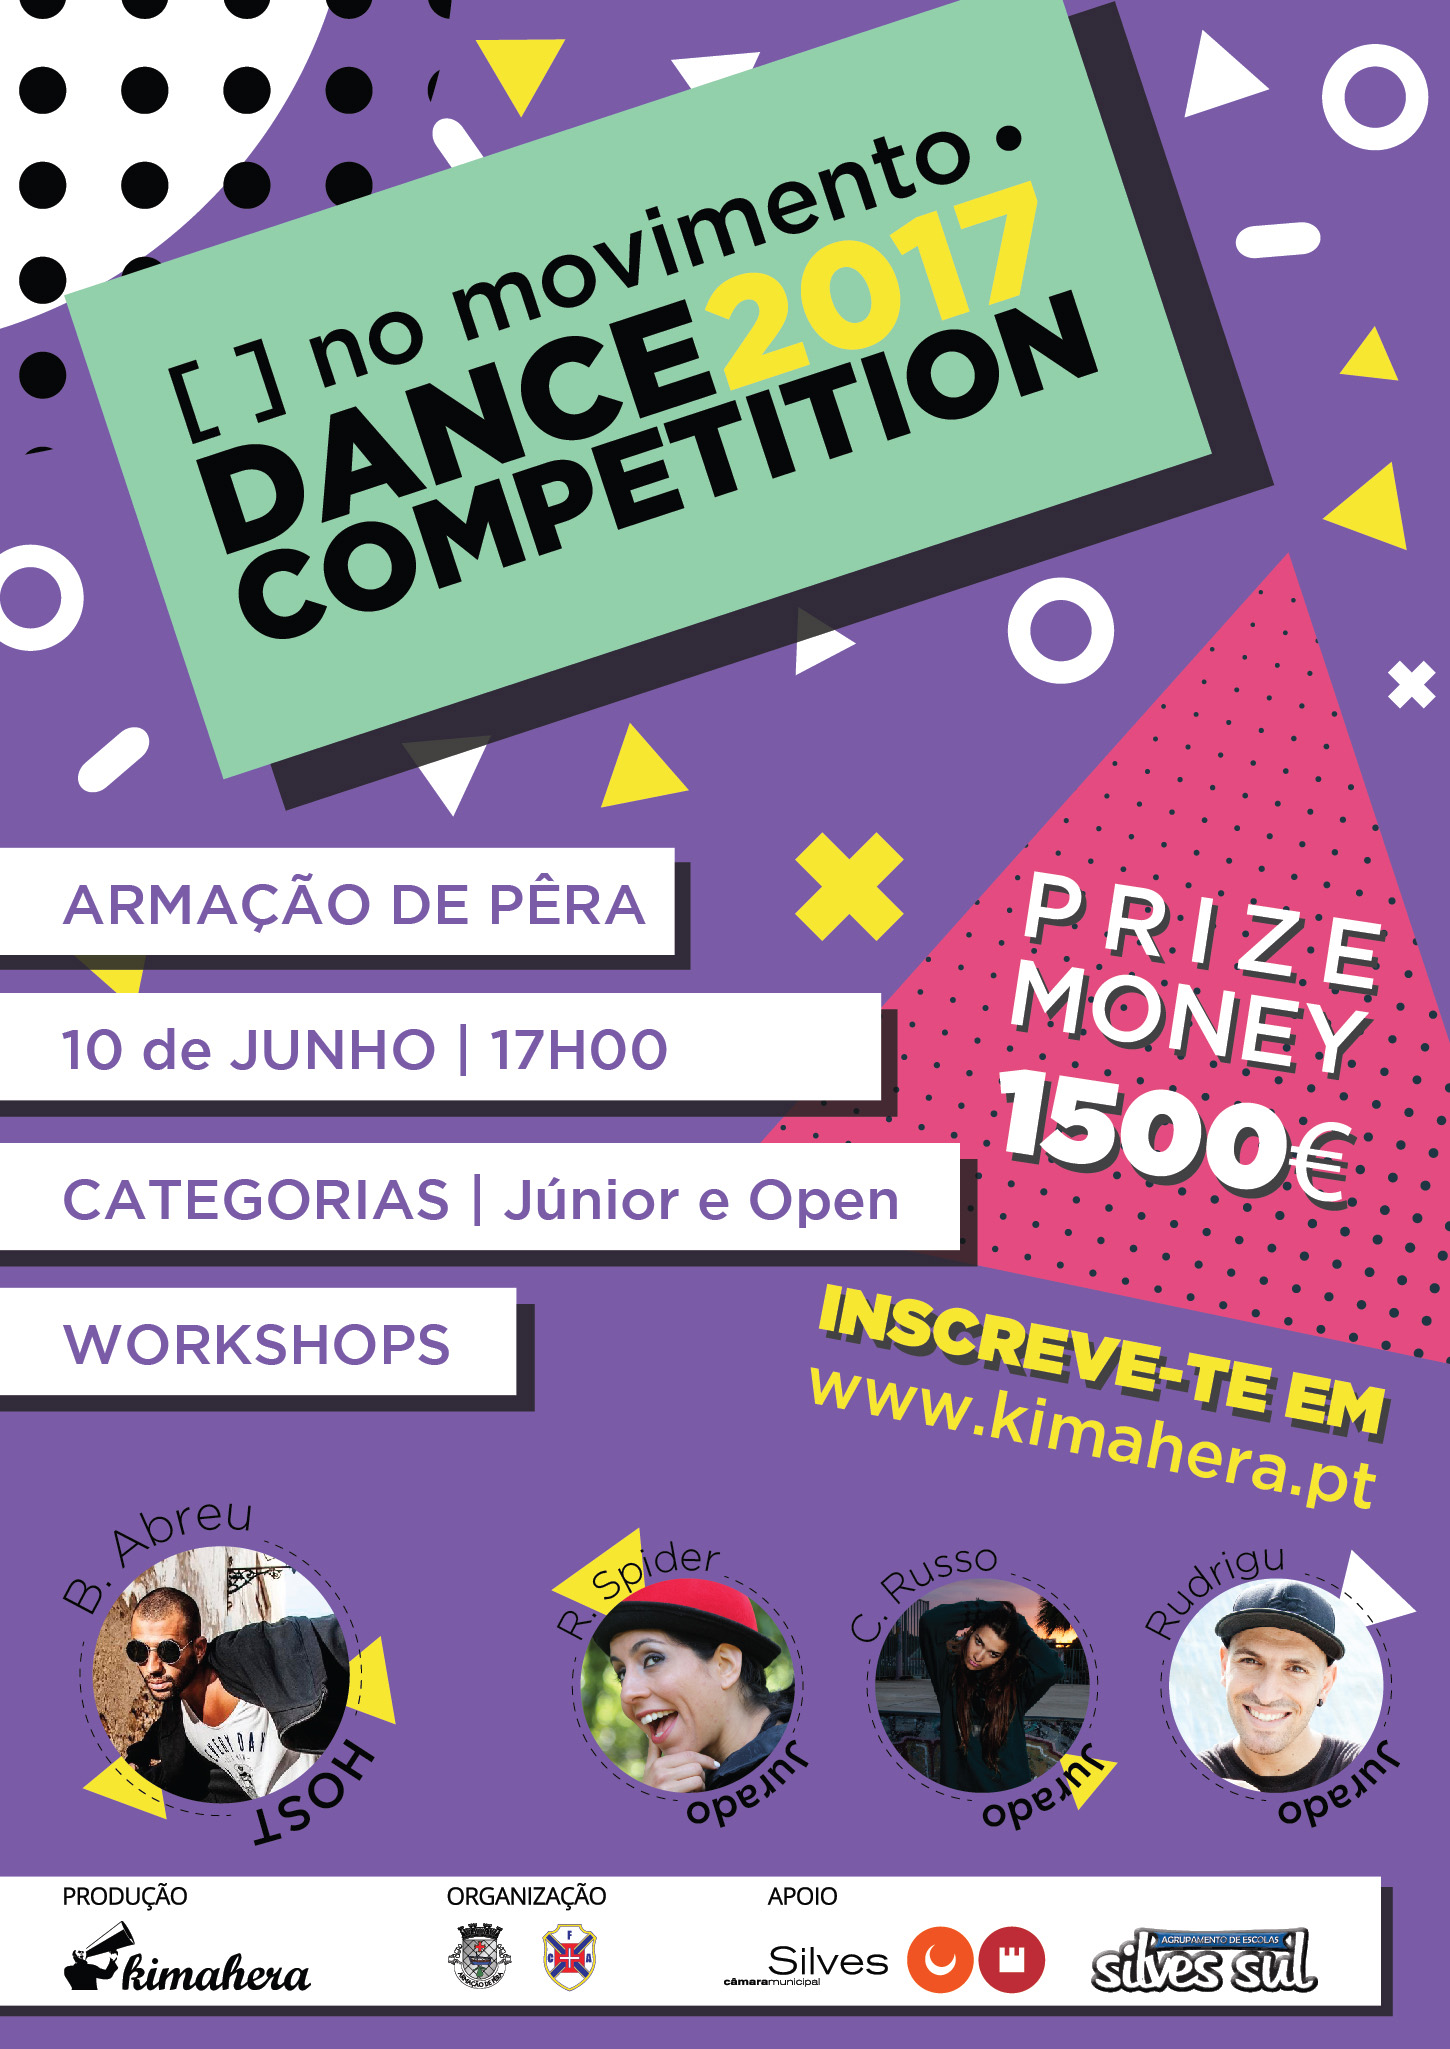 [ ] no movimento • Dance Competition 2017